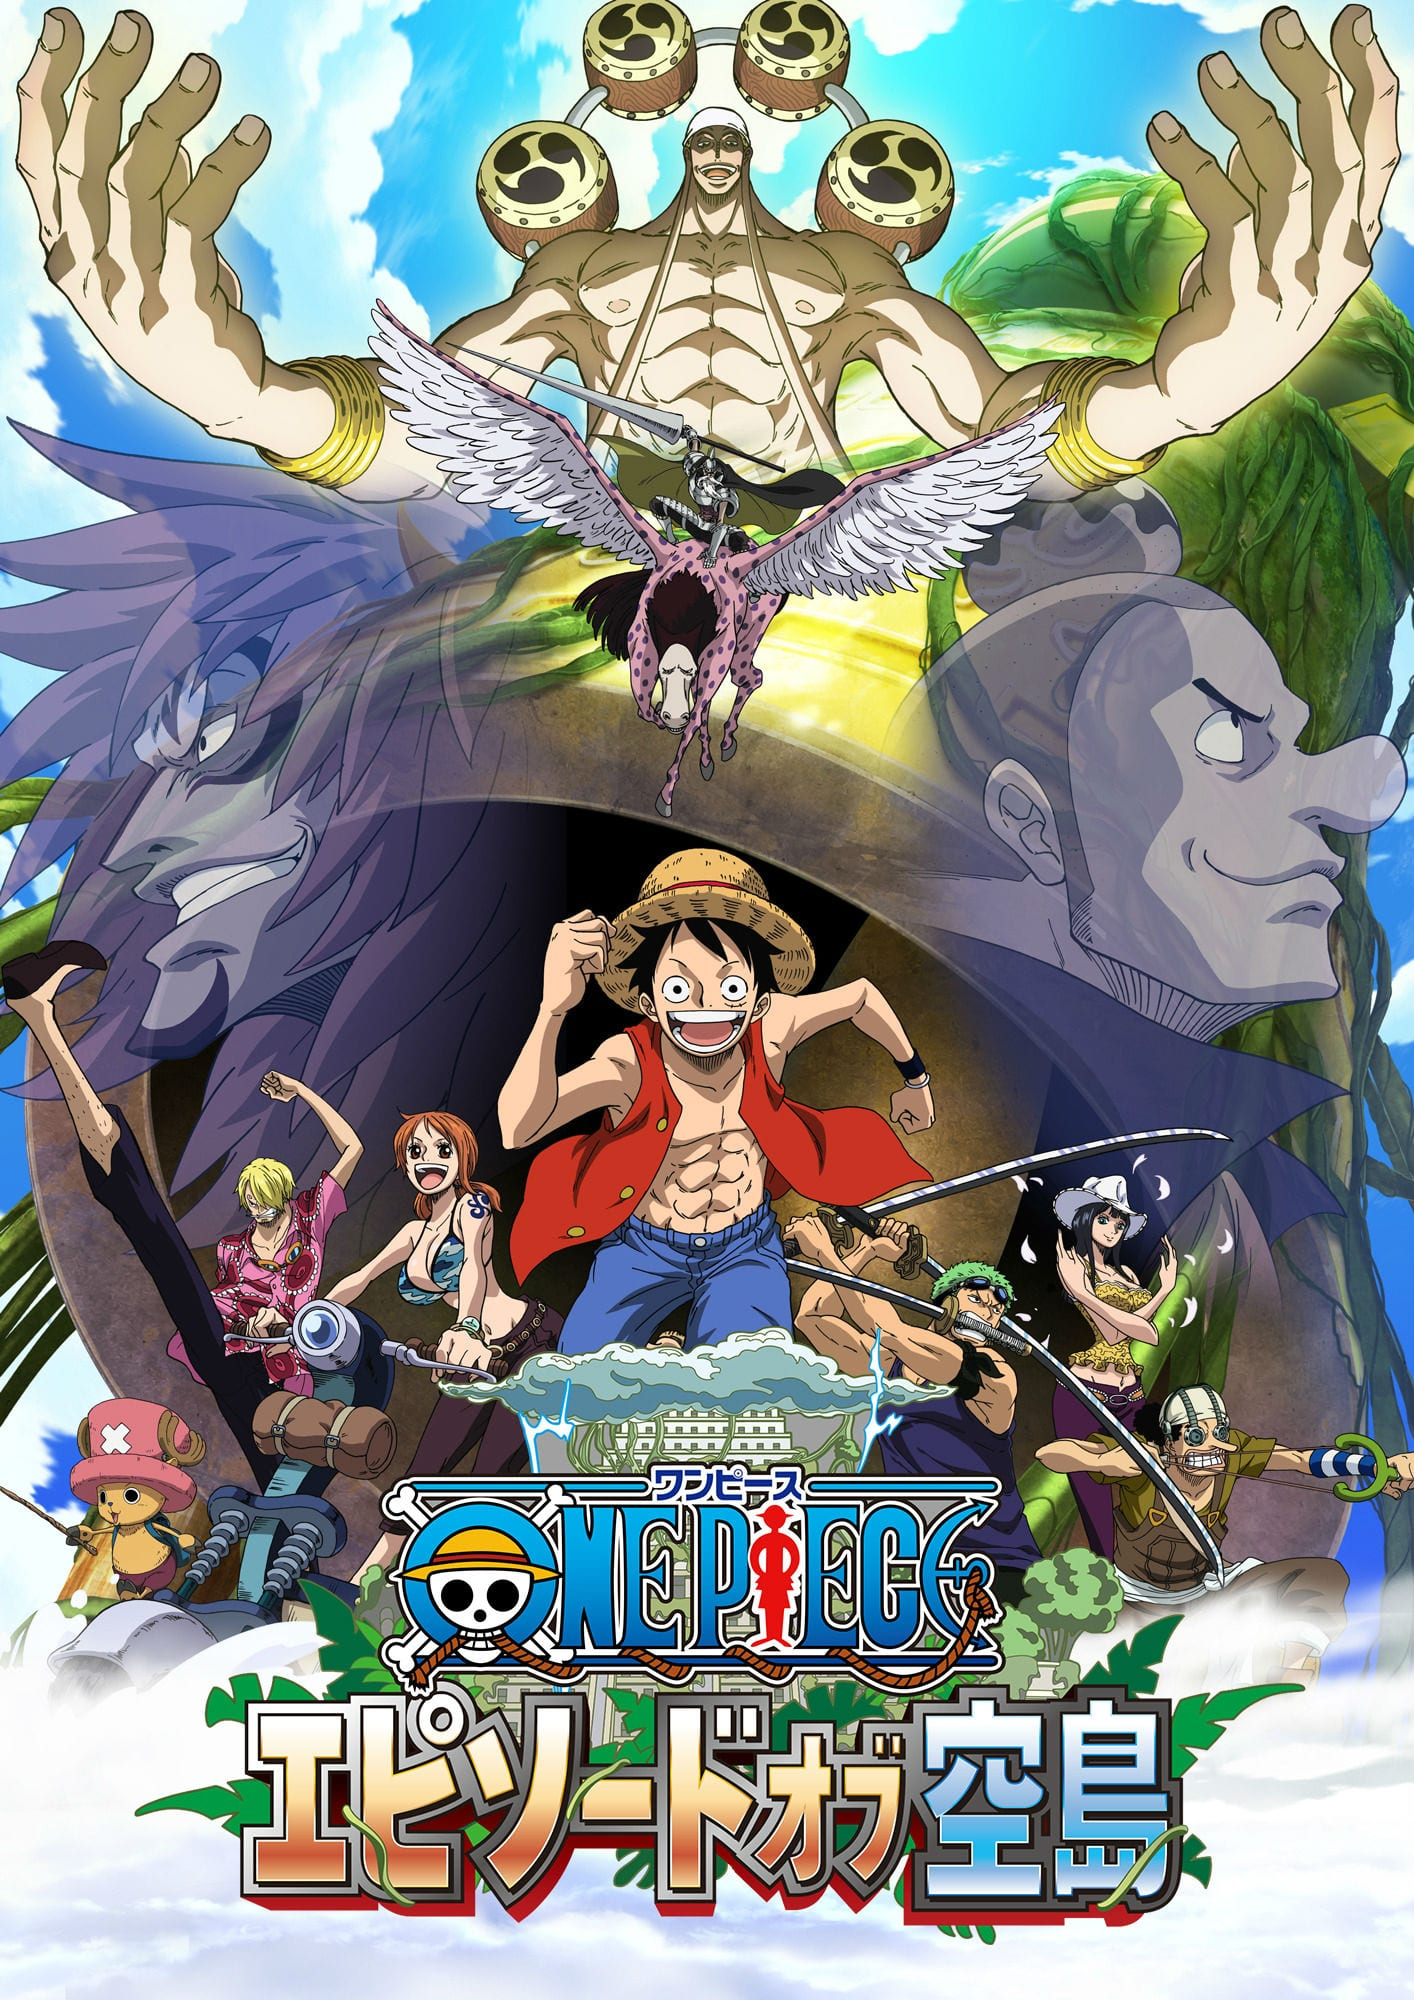 https://mirai.ai/wp-content/uploads/One-Piece-Episode-of-Sorajima-1.jpg